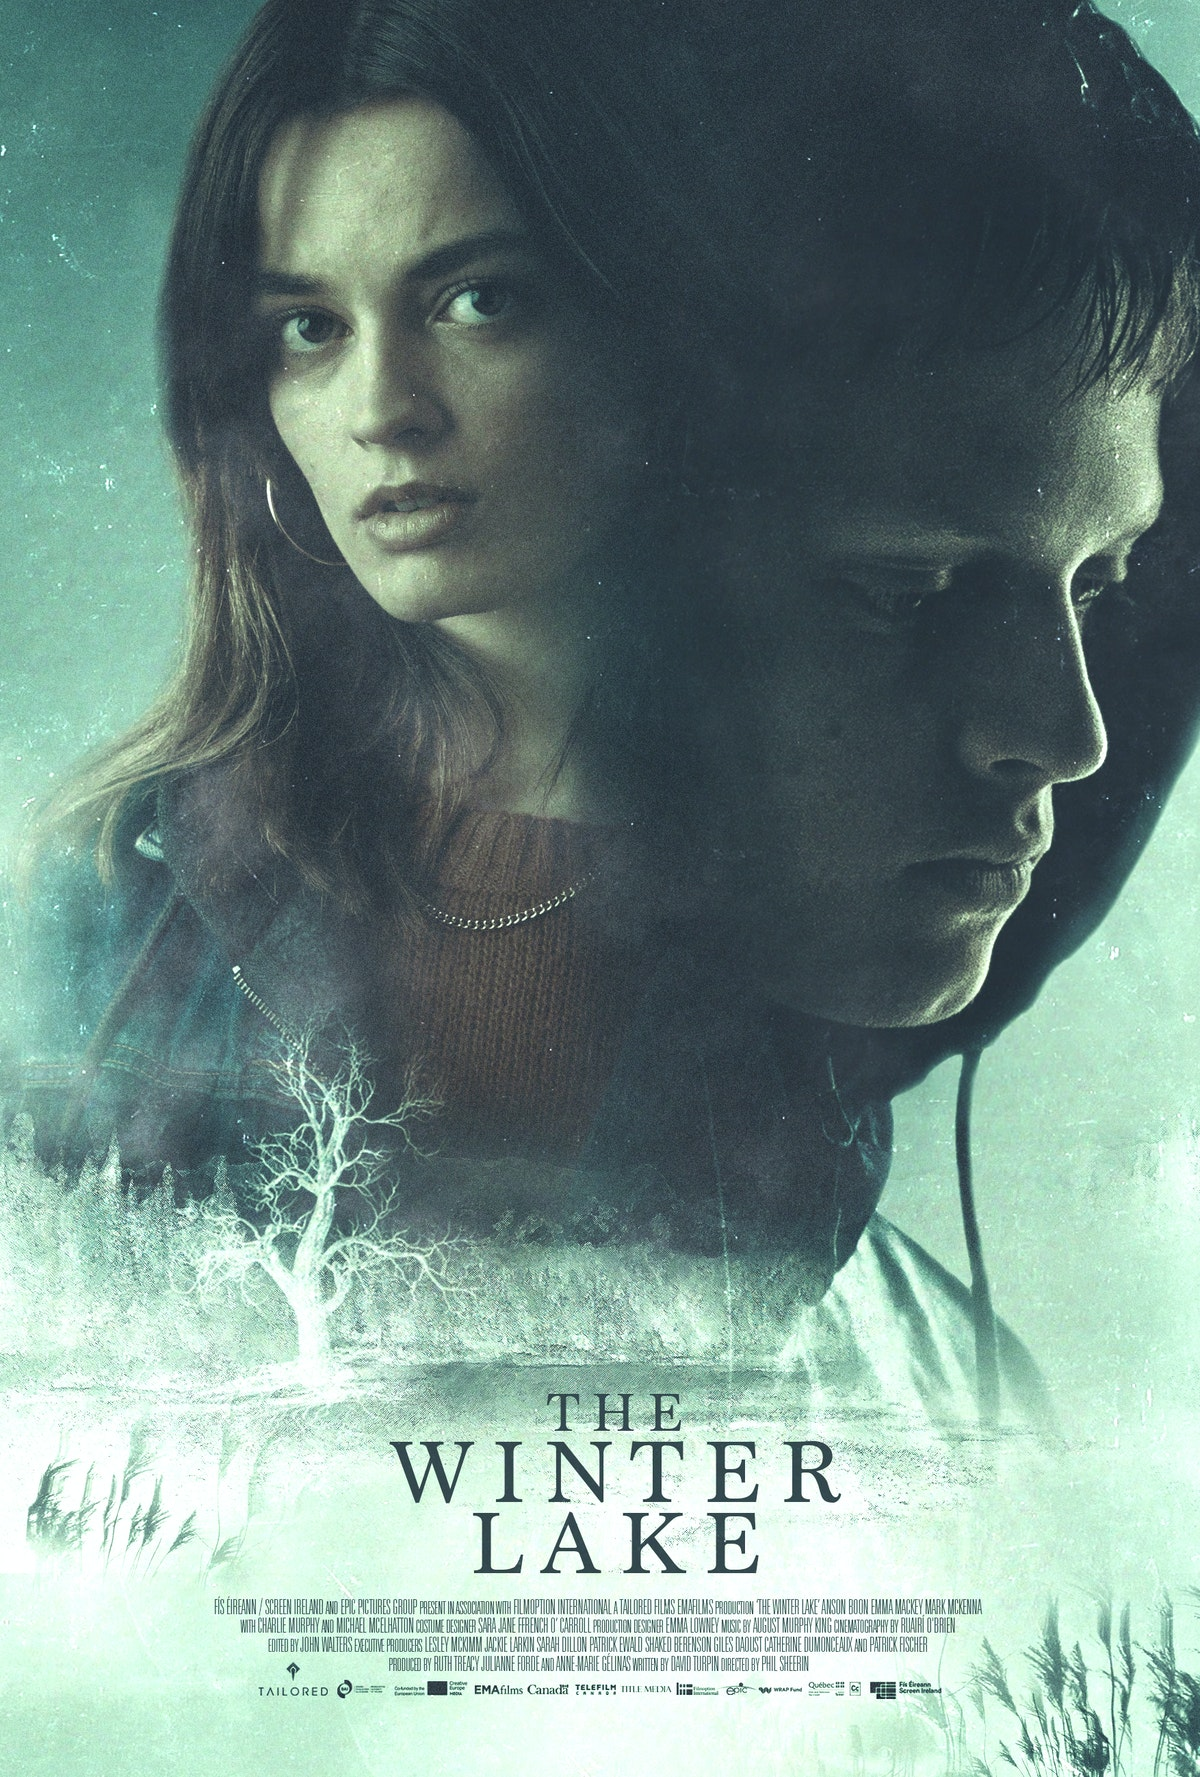 THE WINTER LAKE TO PREMIERE AT GAWAY FILM FLEADH.